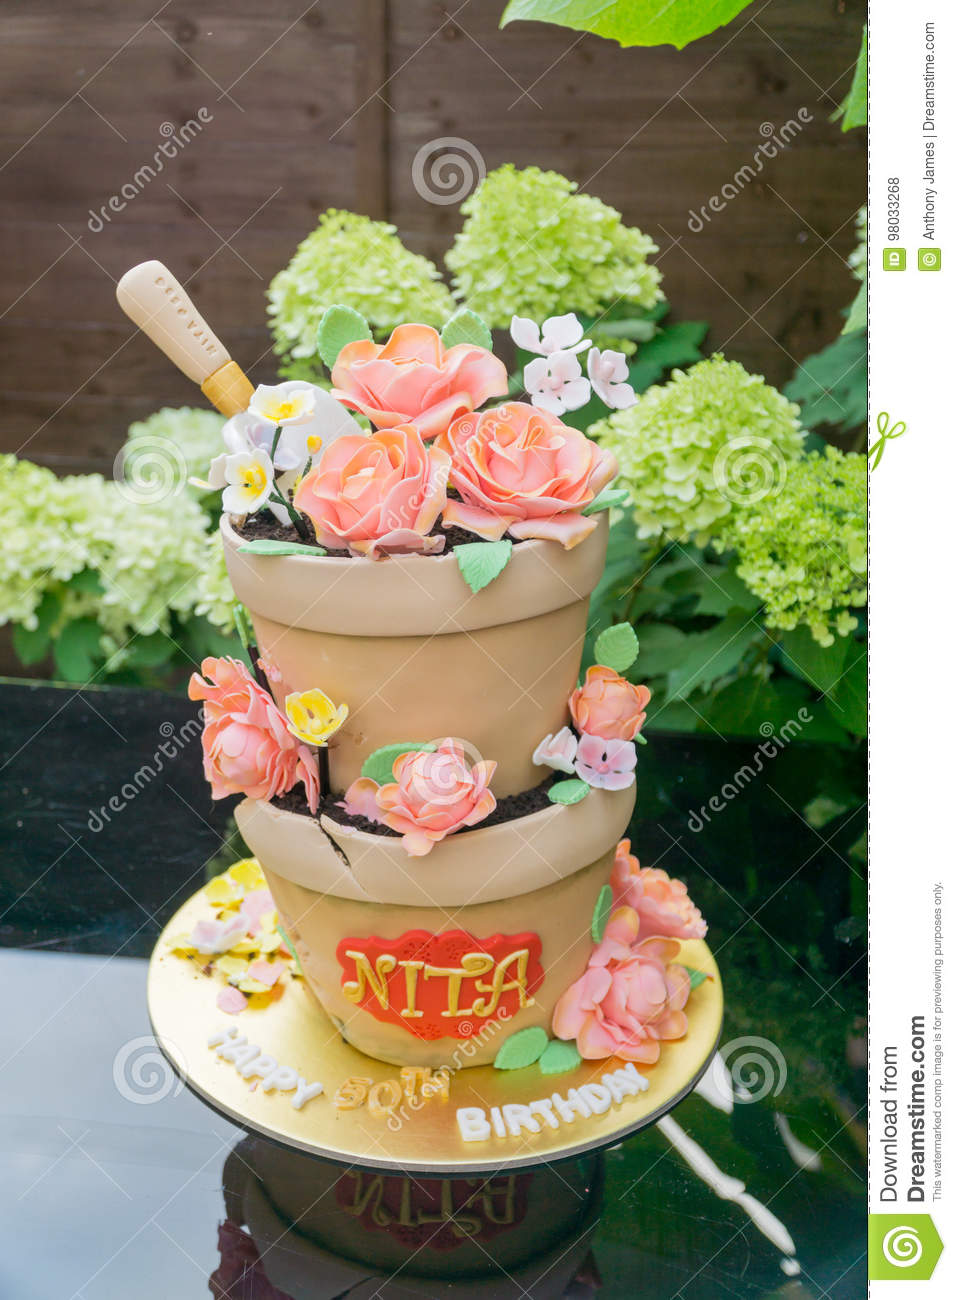 A Birthday Cake Made To Look Like Flower Pots